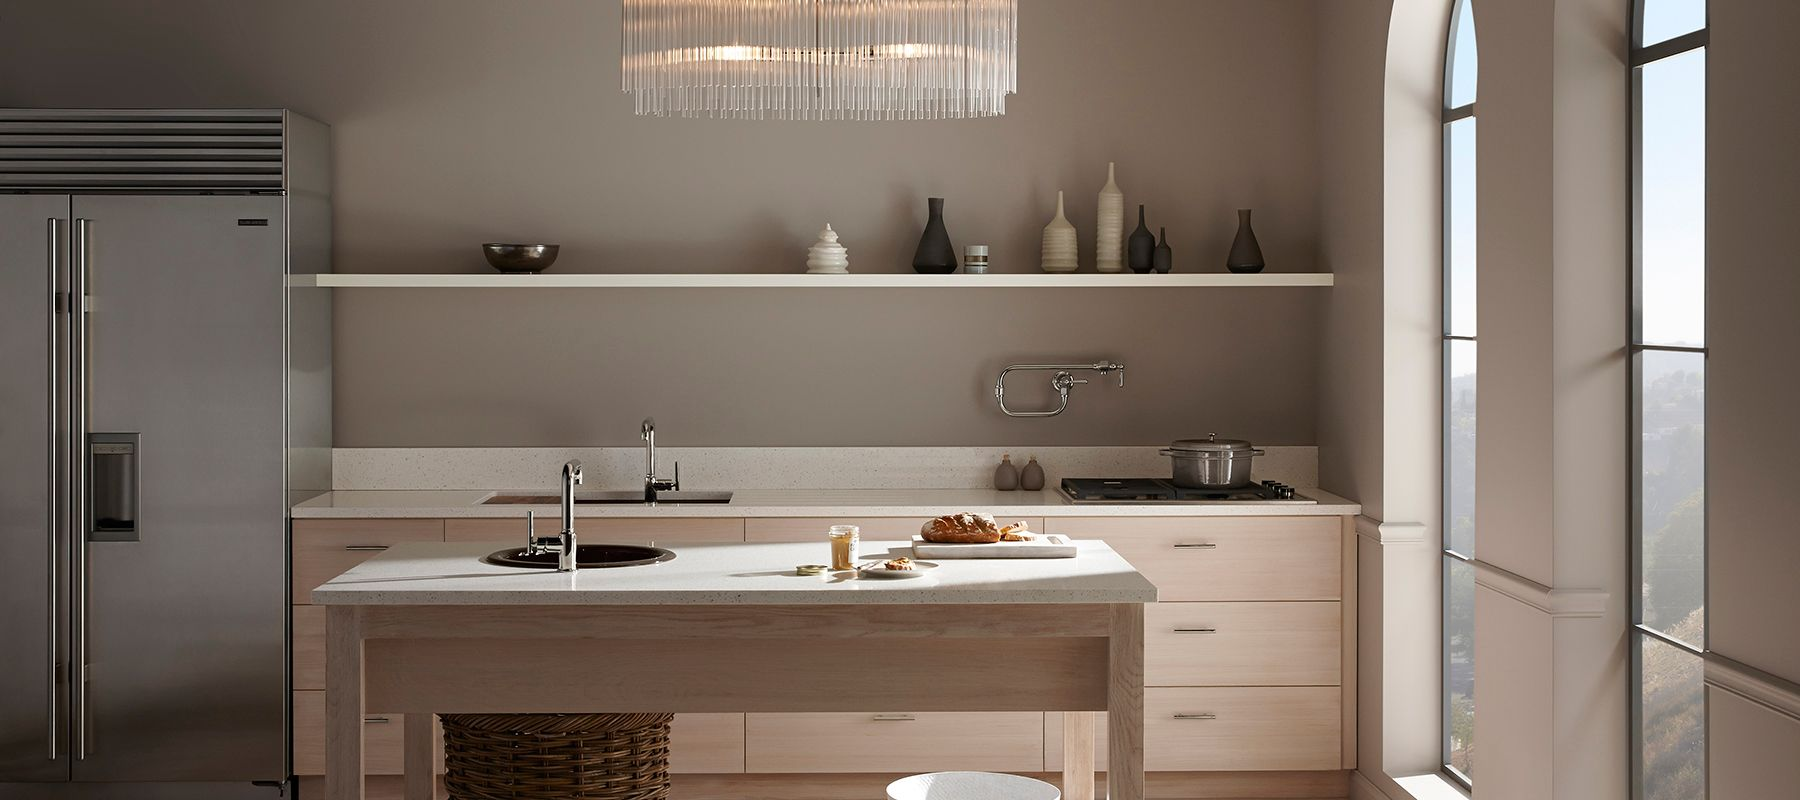 lovely Kholer Kitchen Sinks #9: Pale ...